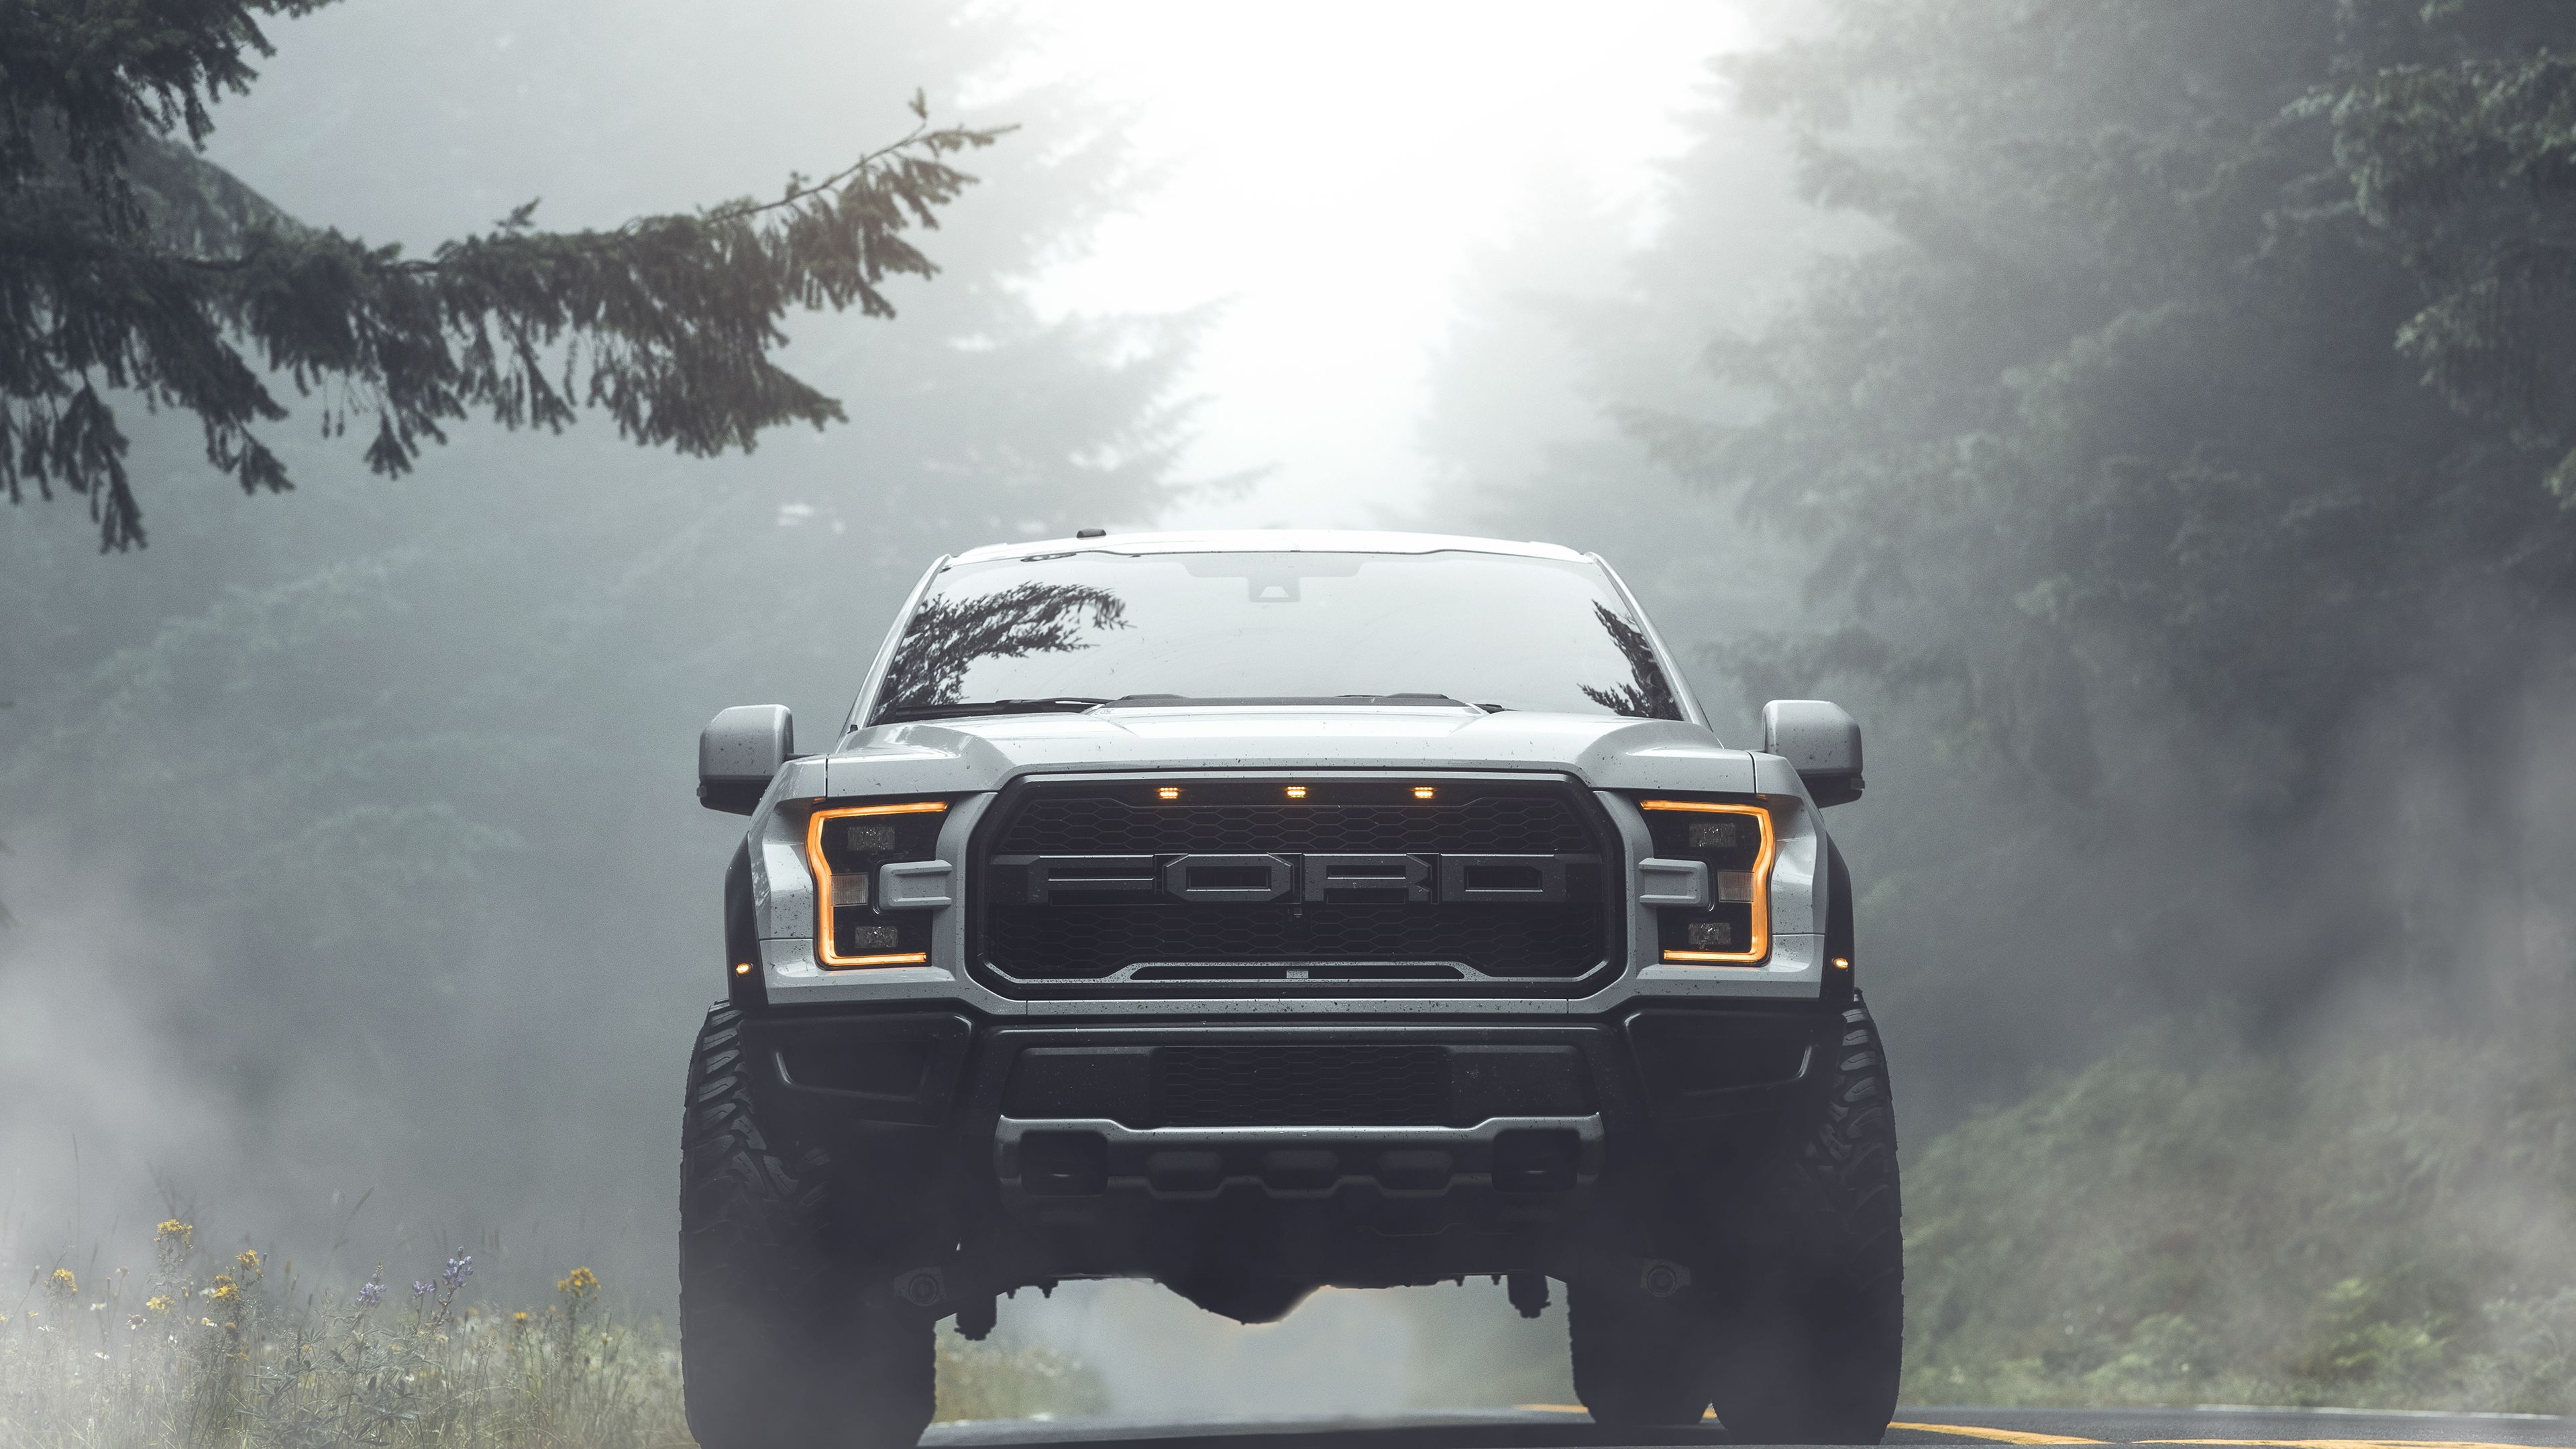 Wallpaper 4k Ford Raptor 2019 Cars Wallpapers 4k Wallpapers